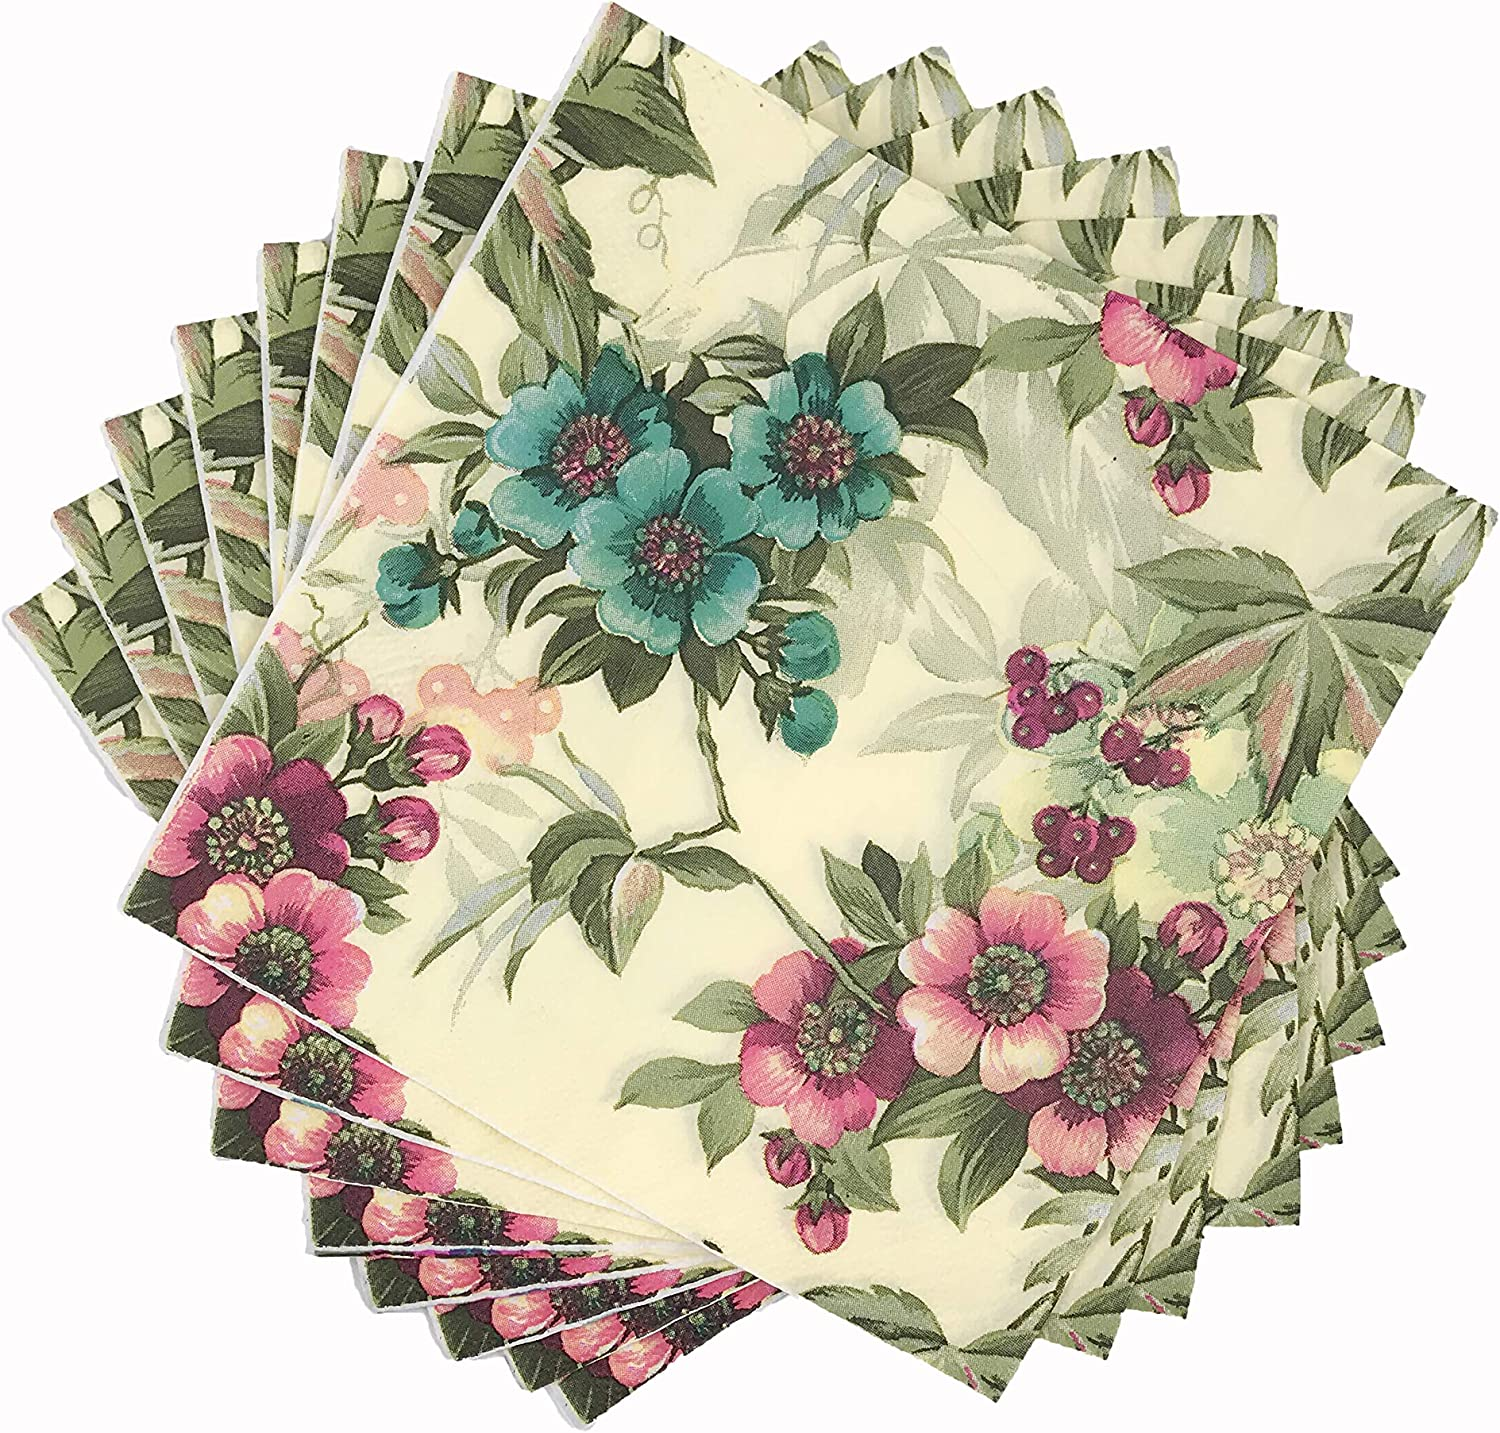 4 Shabby Chic Roses Paper Napkins Serviettes Crafts Supplies Napkins Crafts New